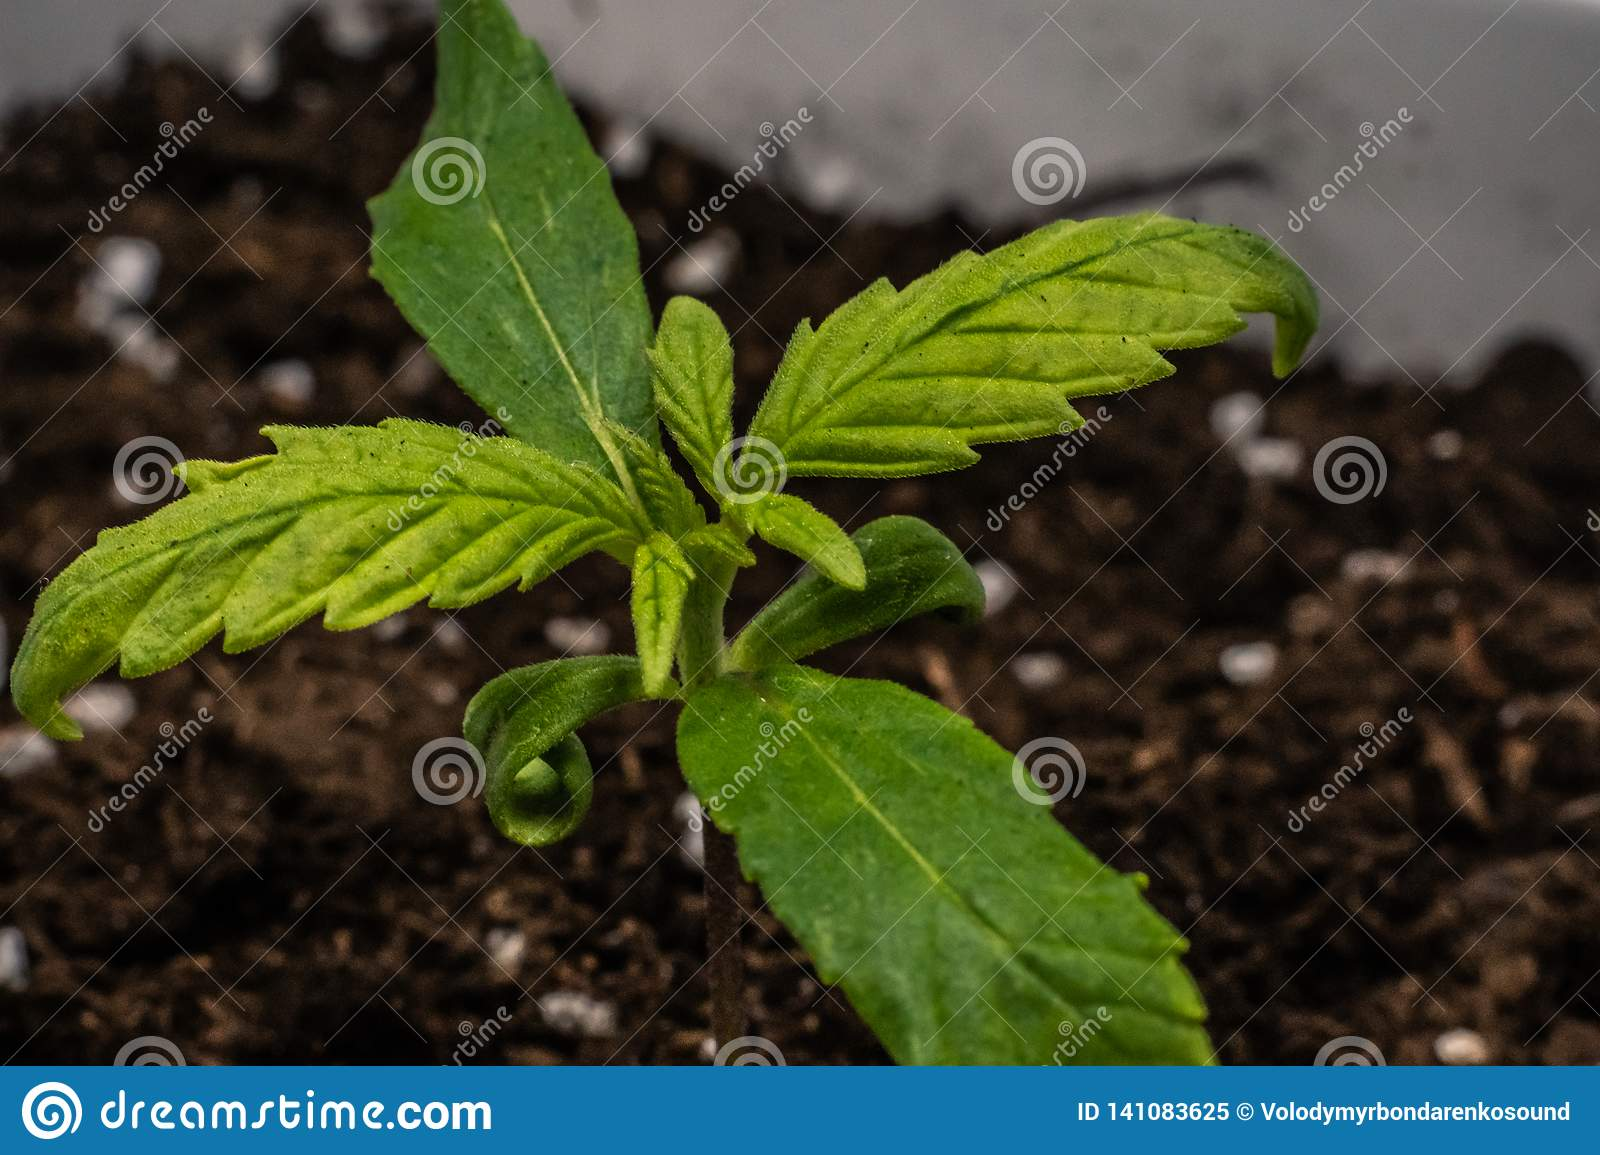 Sprout of medical marijuana plant growing indoor. Cannabis plant